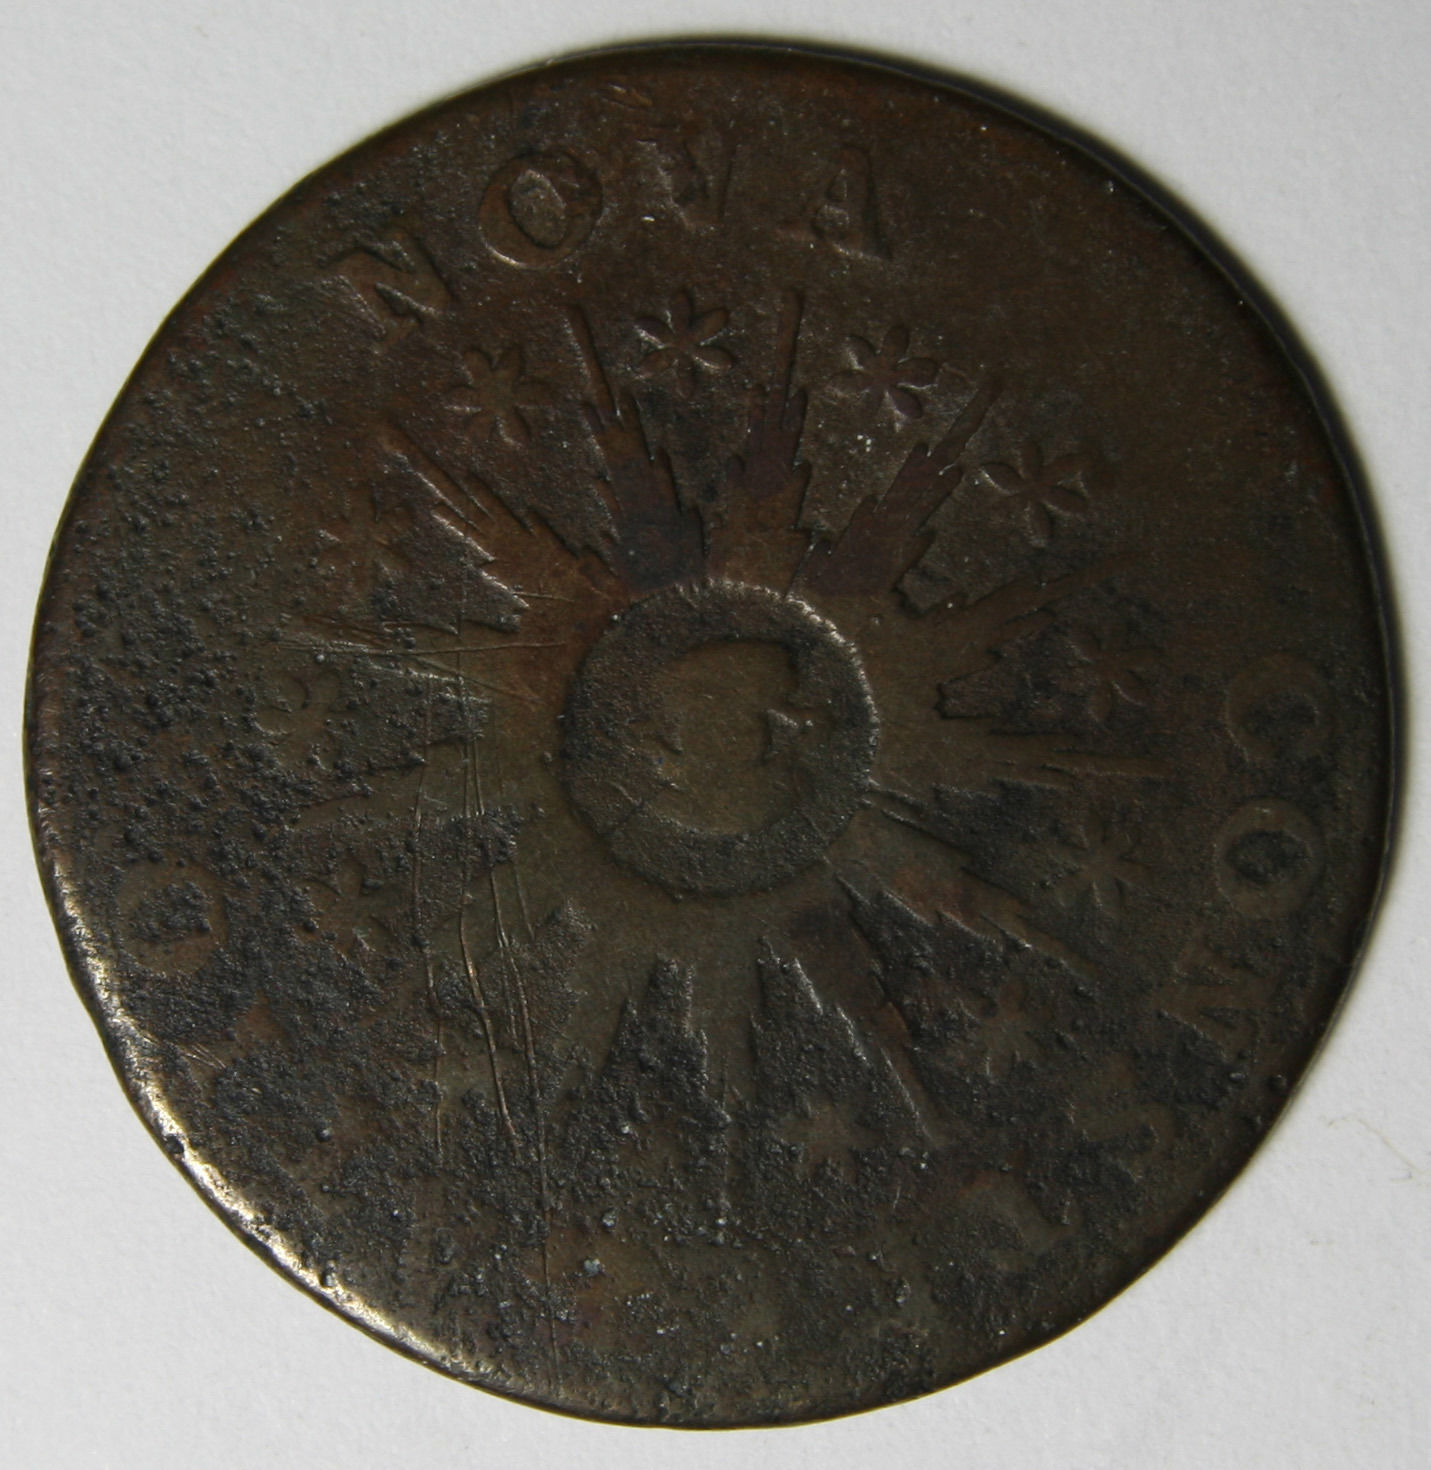 1785 Nova Constellatio Copper Pointed Rays Colonial Coin Lot # MZ 3931